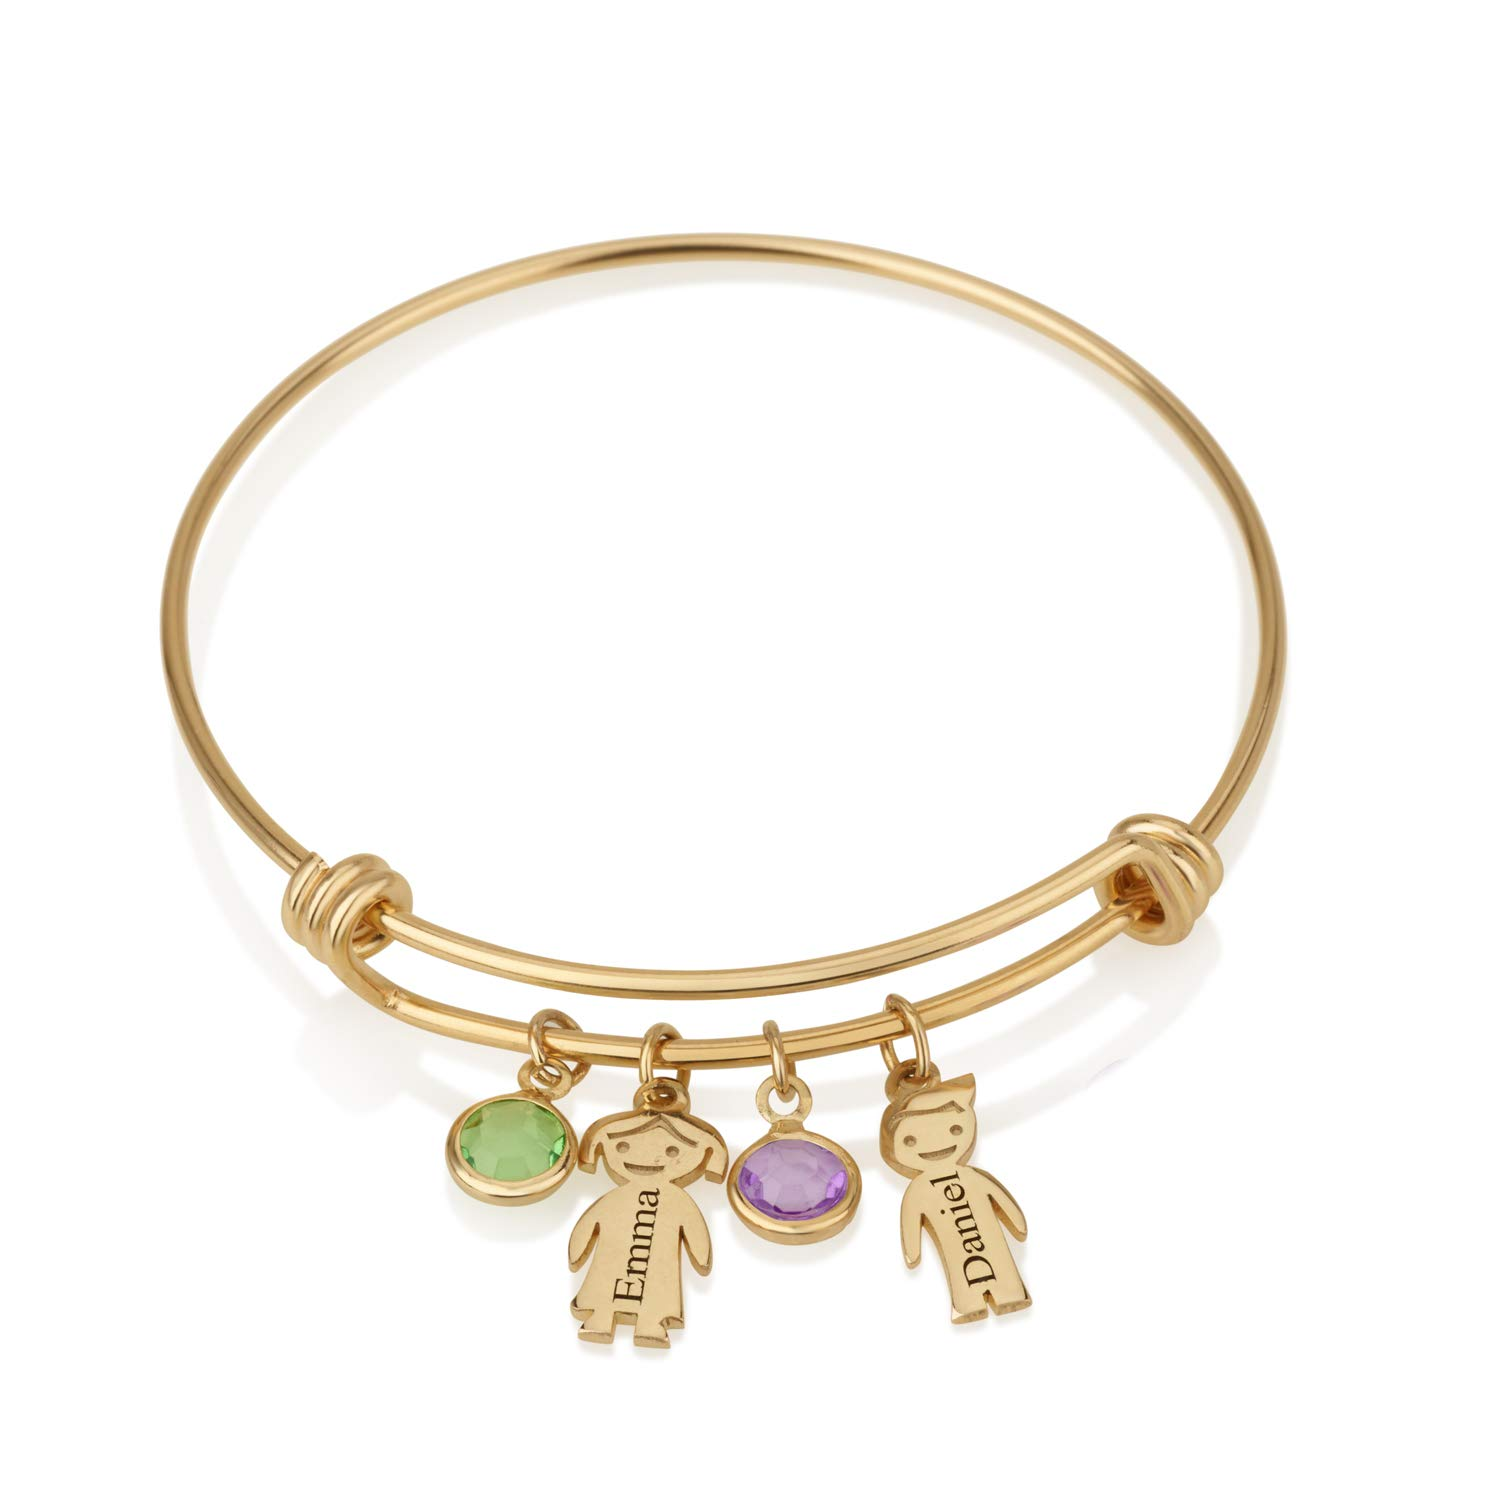 Beleco Jewelry Personalized Children Name Bracelet for Mom with Names and Birthstones Kids Charm Customize Bangle